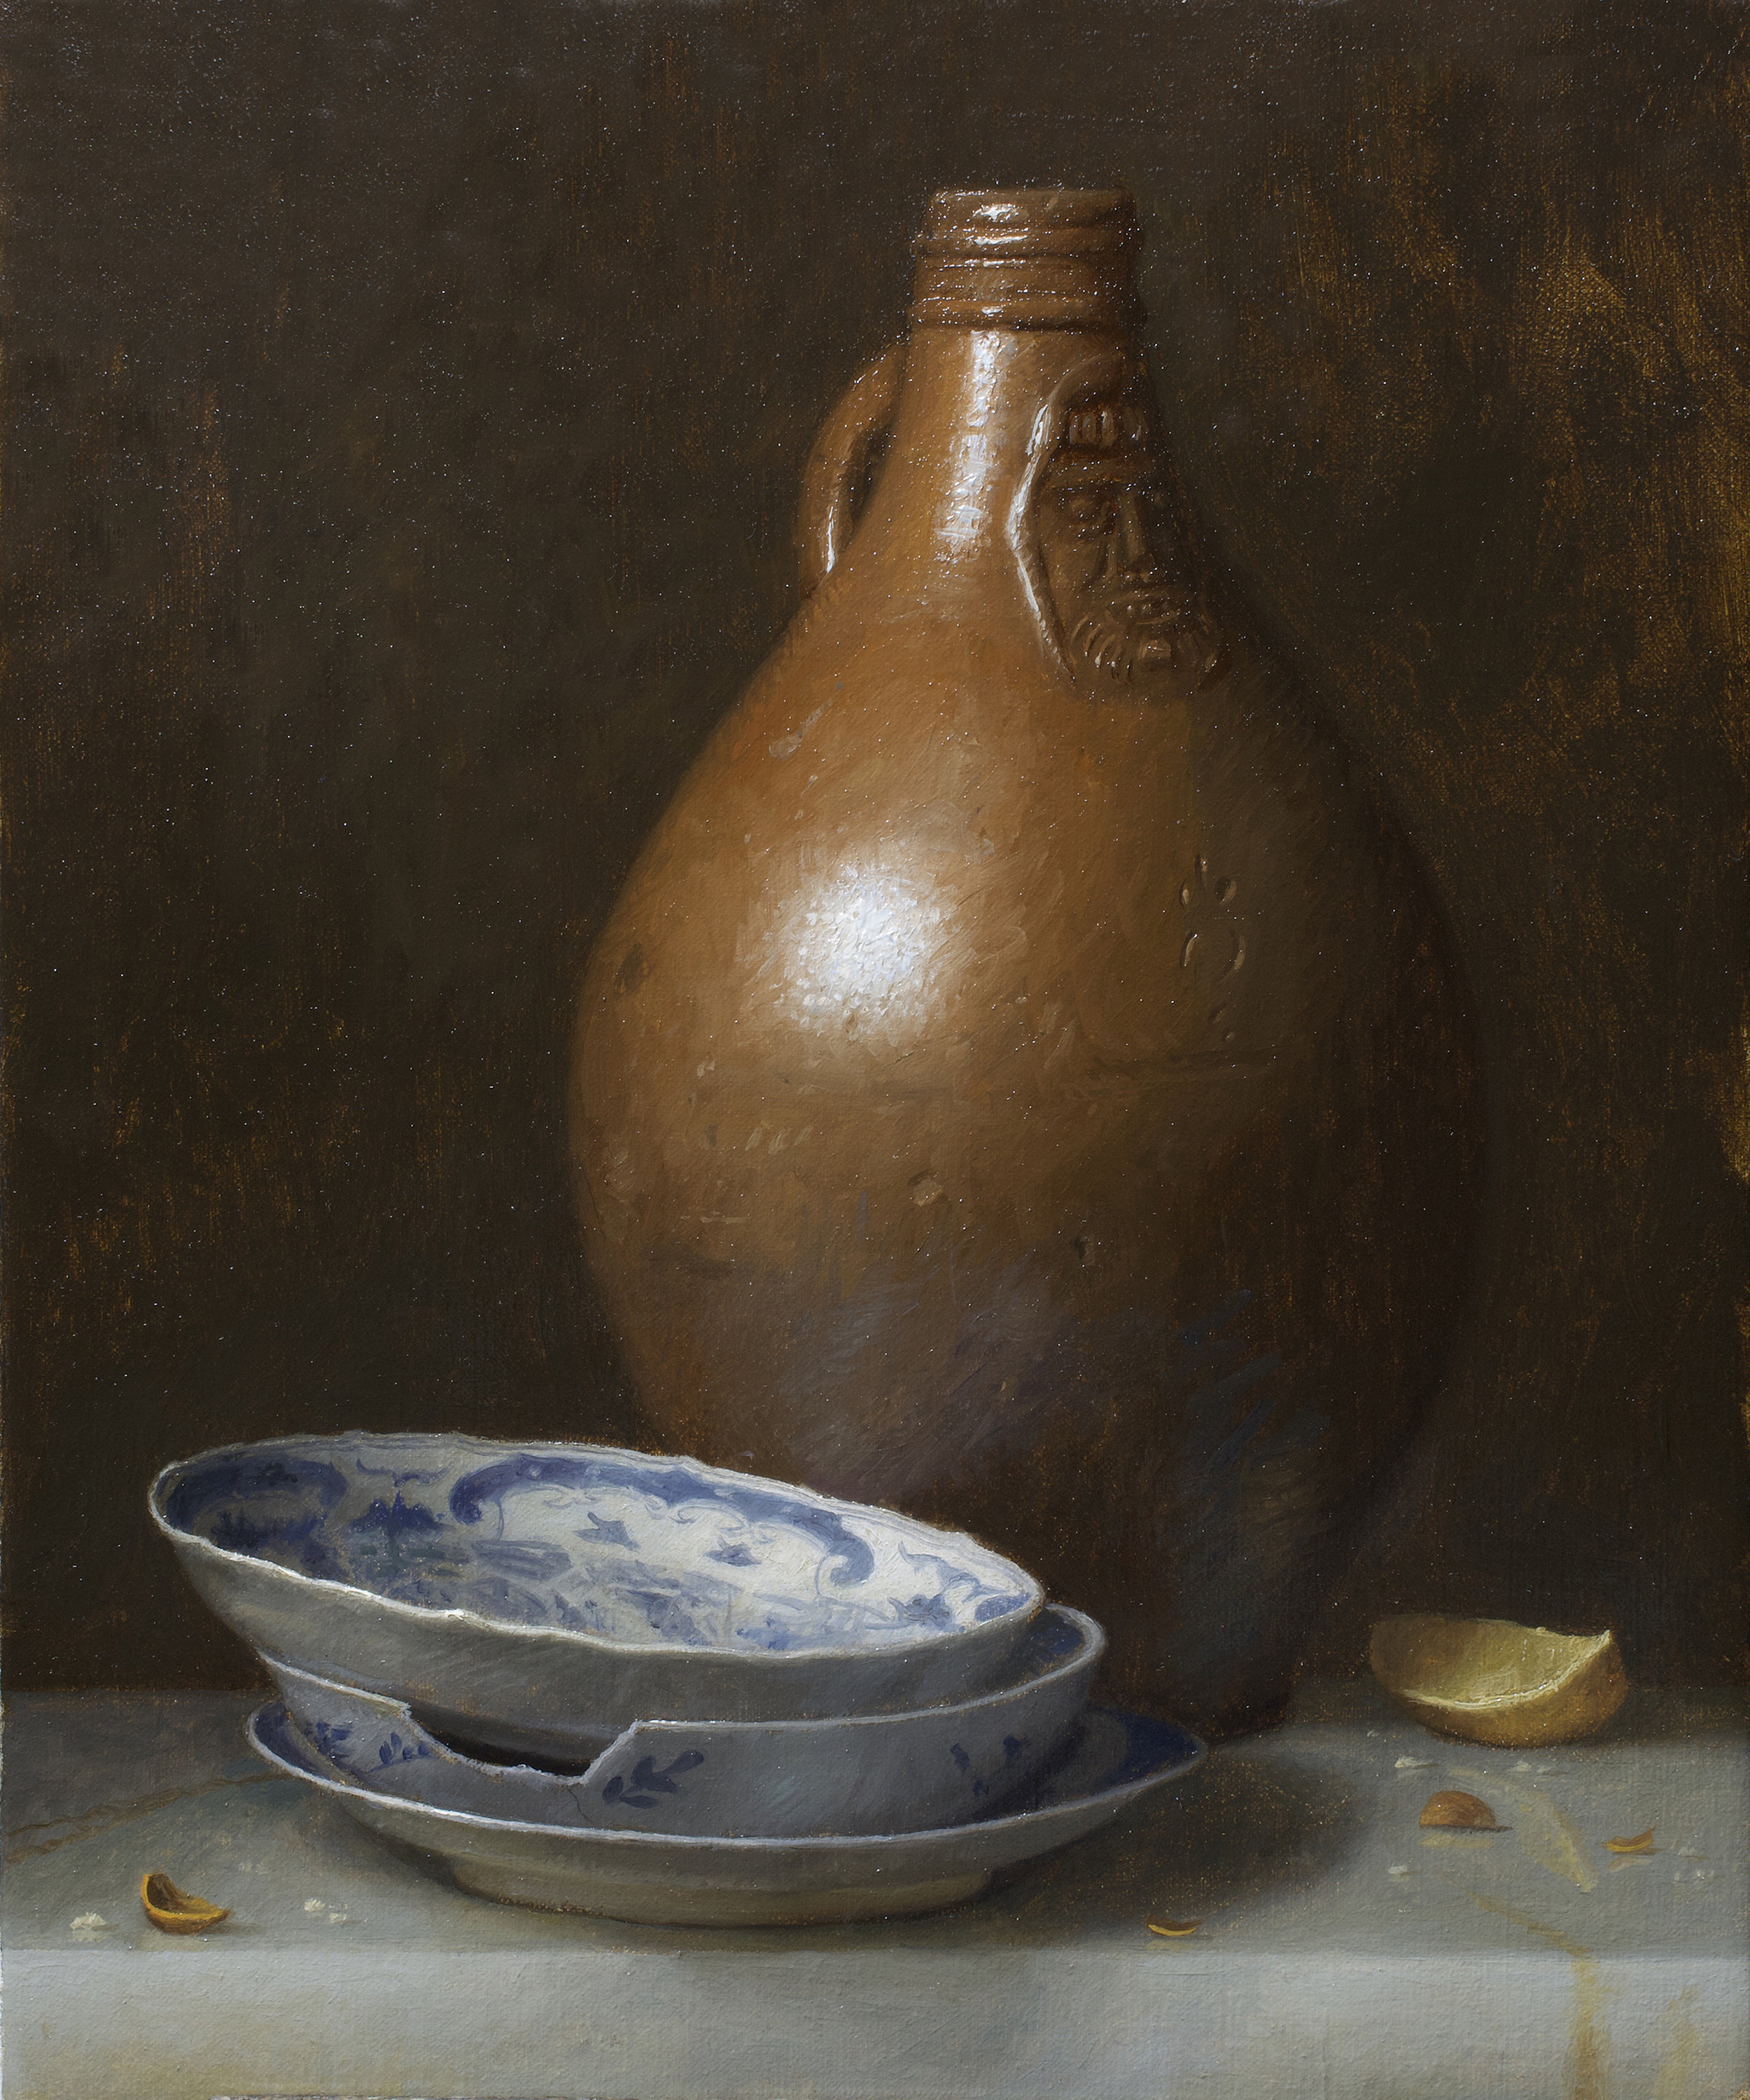 Justin Wood  (b. 1982)  Bartmann Jug and Porcelain , 2018 12 x 10 in. oil on linen